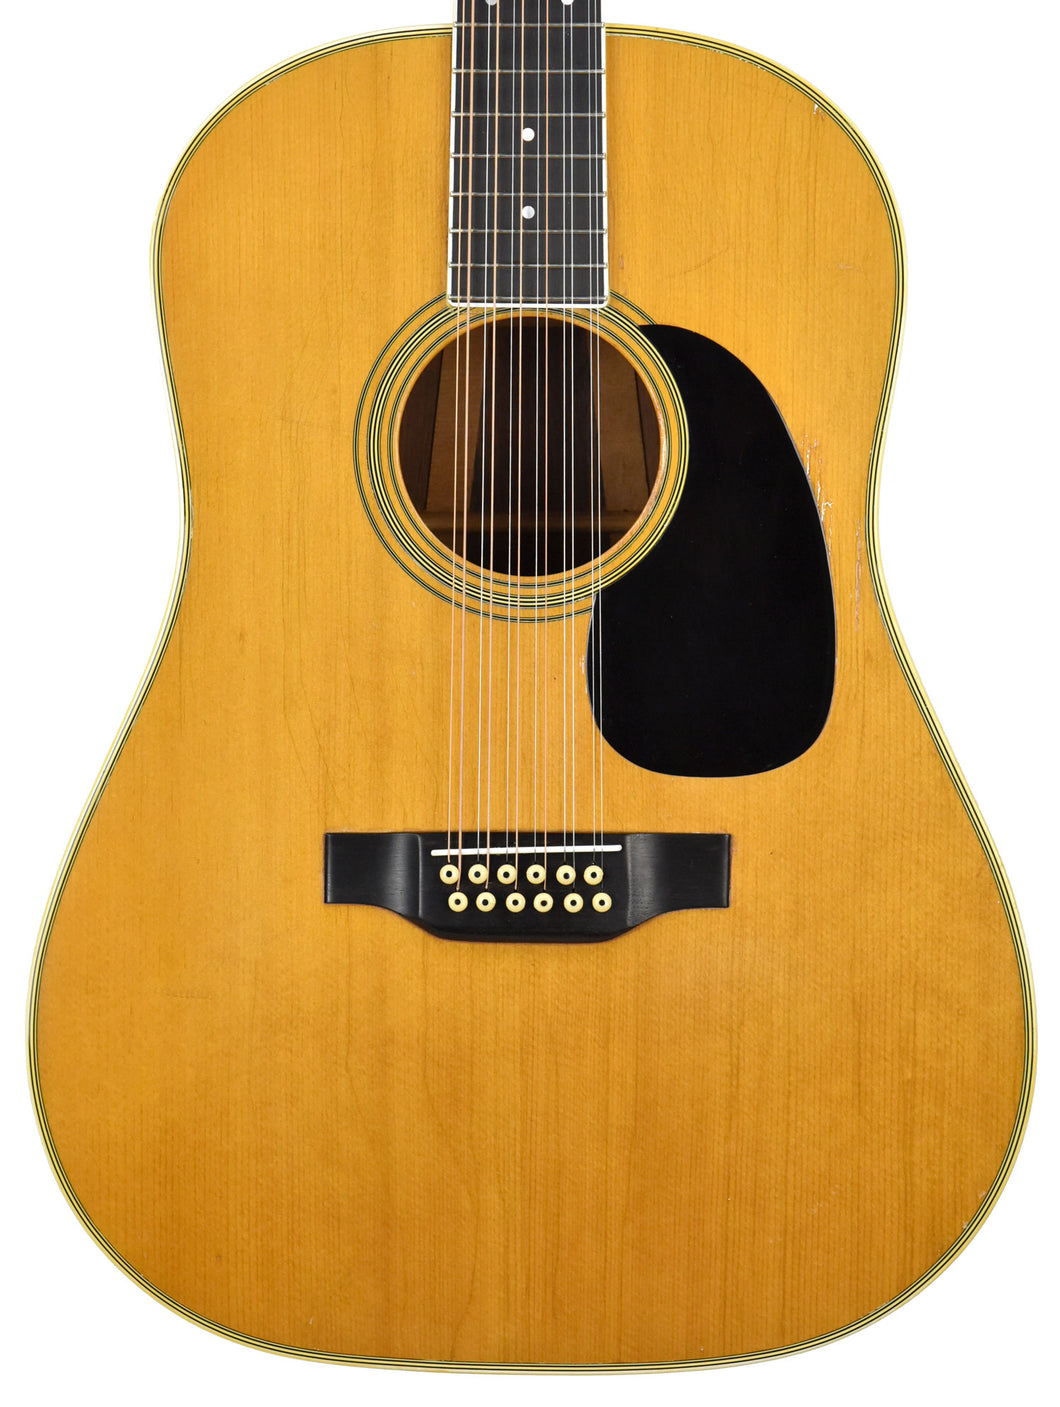 USED 1968 Martin D-12-35 12-String Brazilian RosewoodAcoustic Guitar w/OHSC 232134